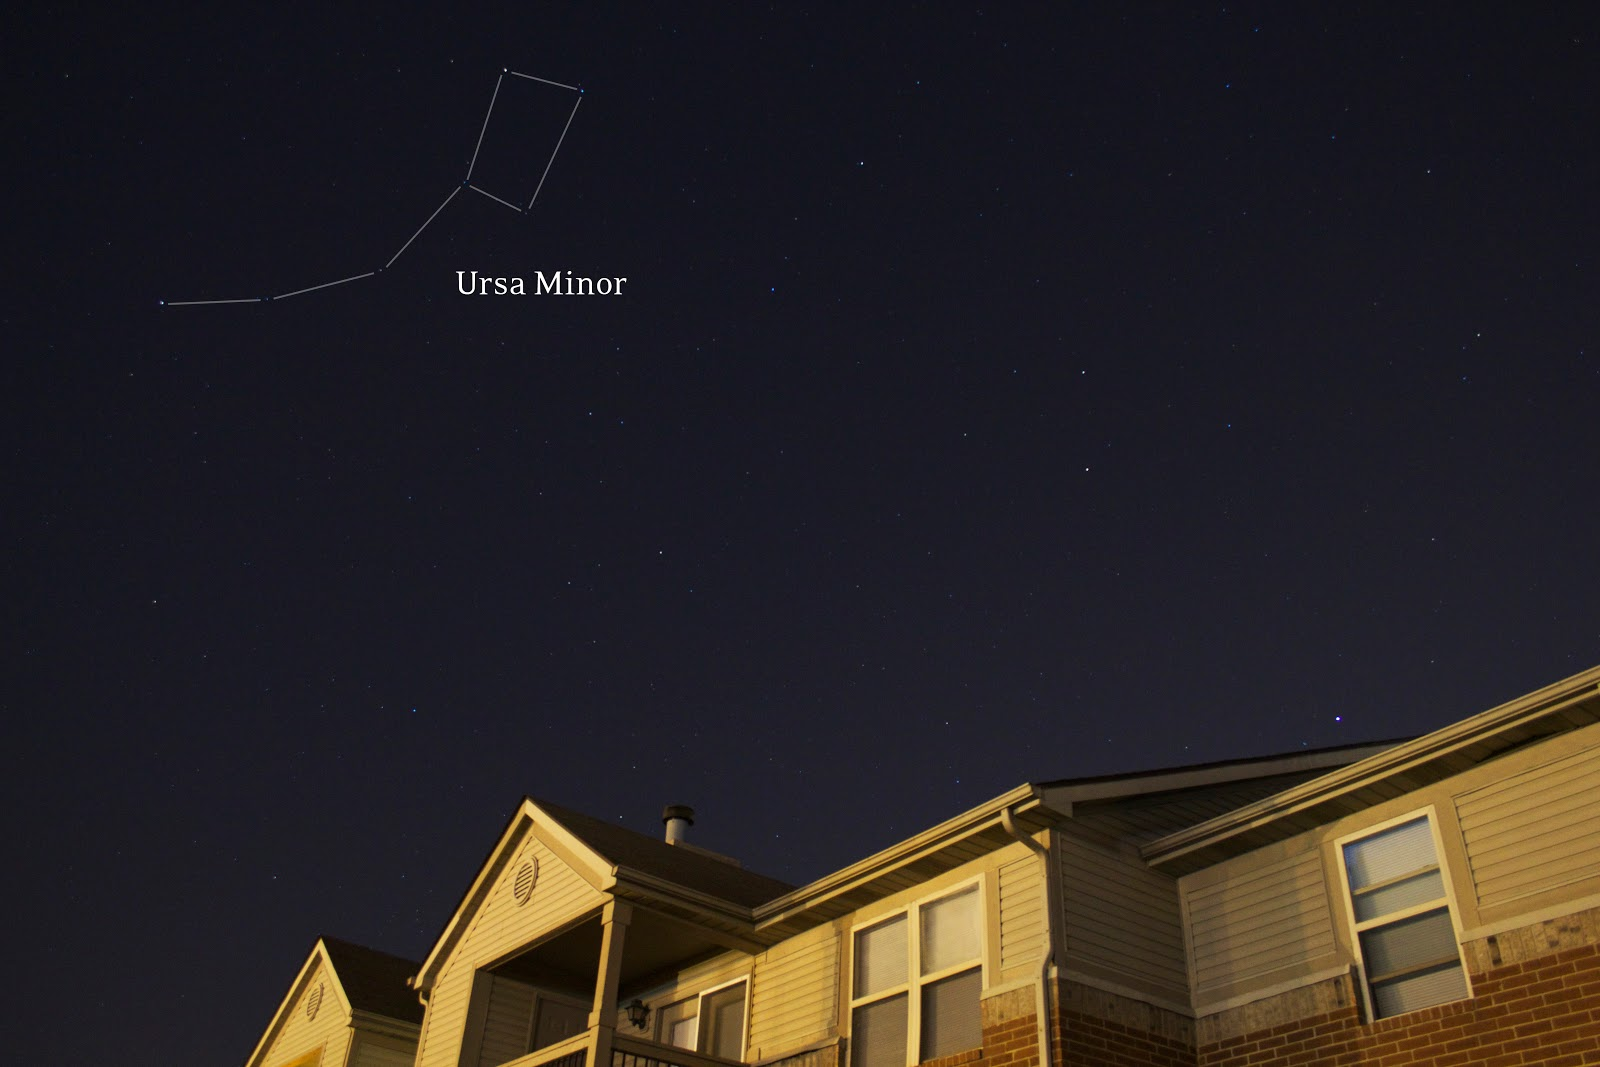 ursa minor with DSLR